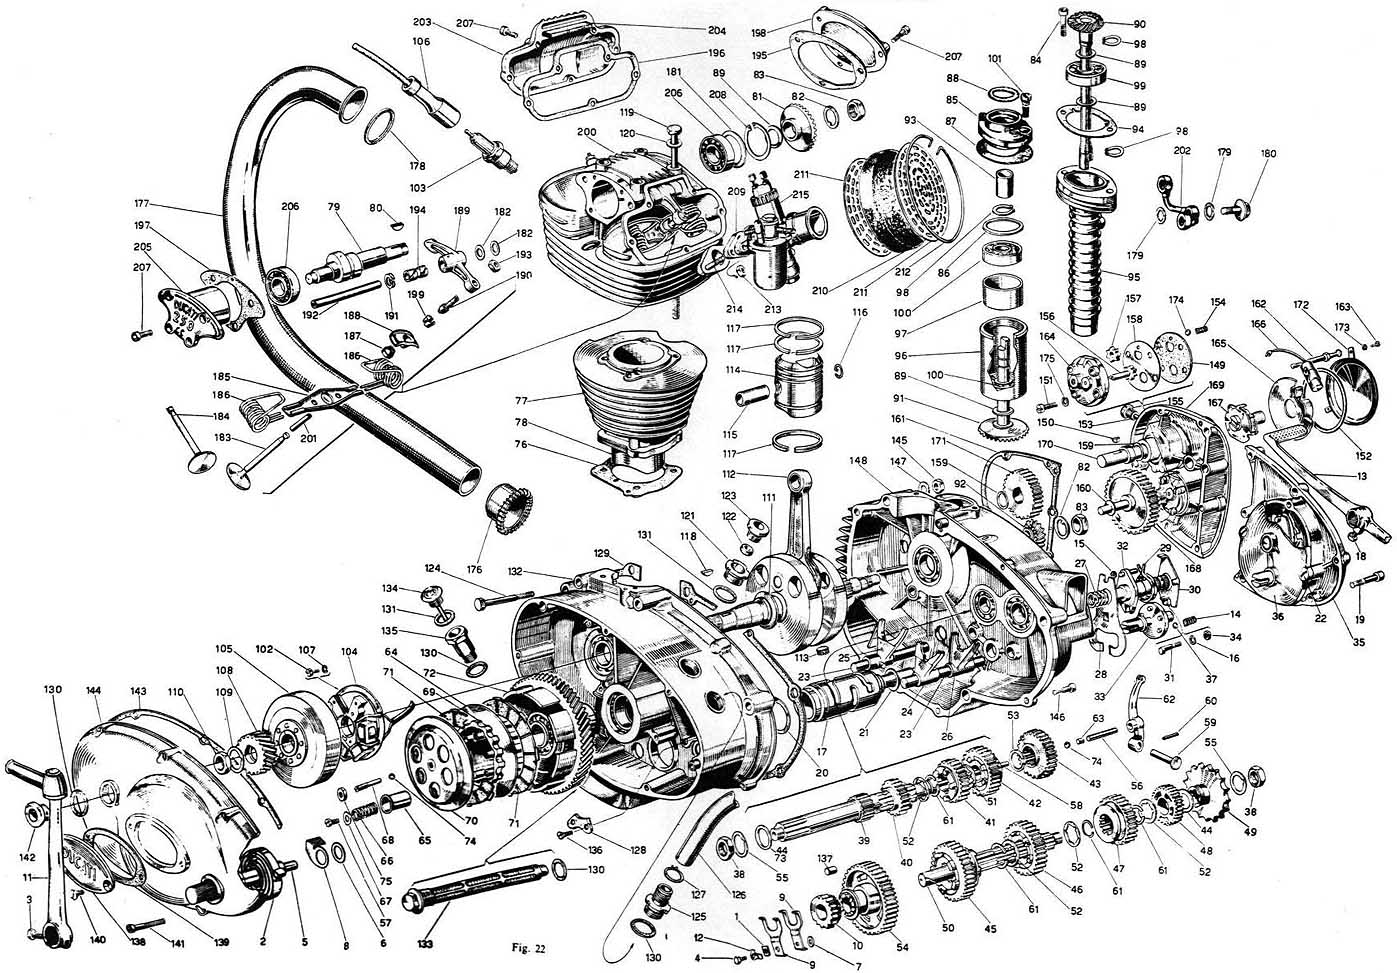 v45 engine diagram honda tmx 125 engine diagram honda wiring diagrams